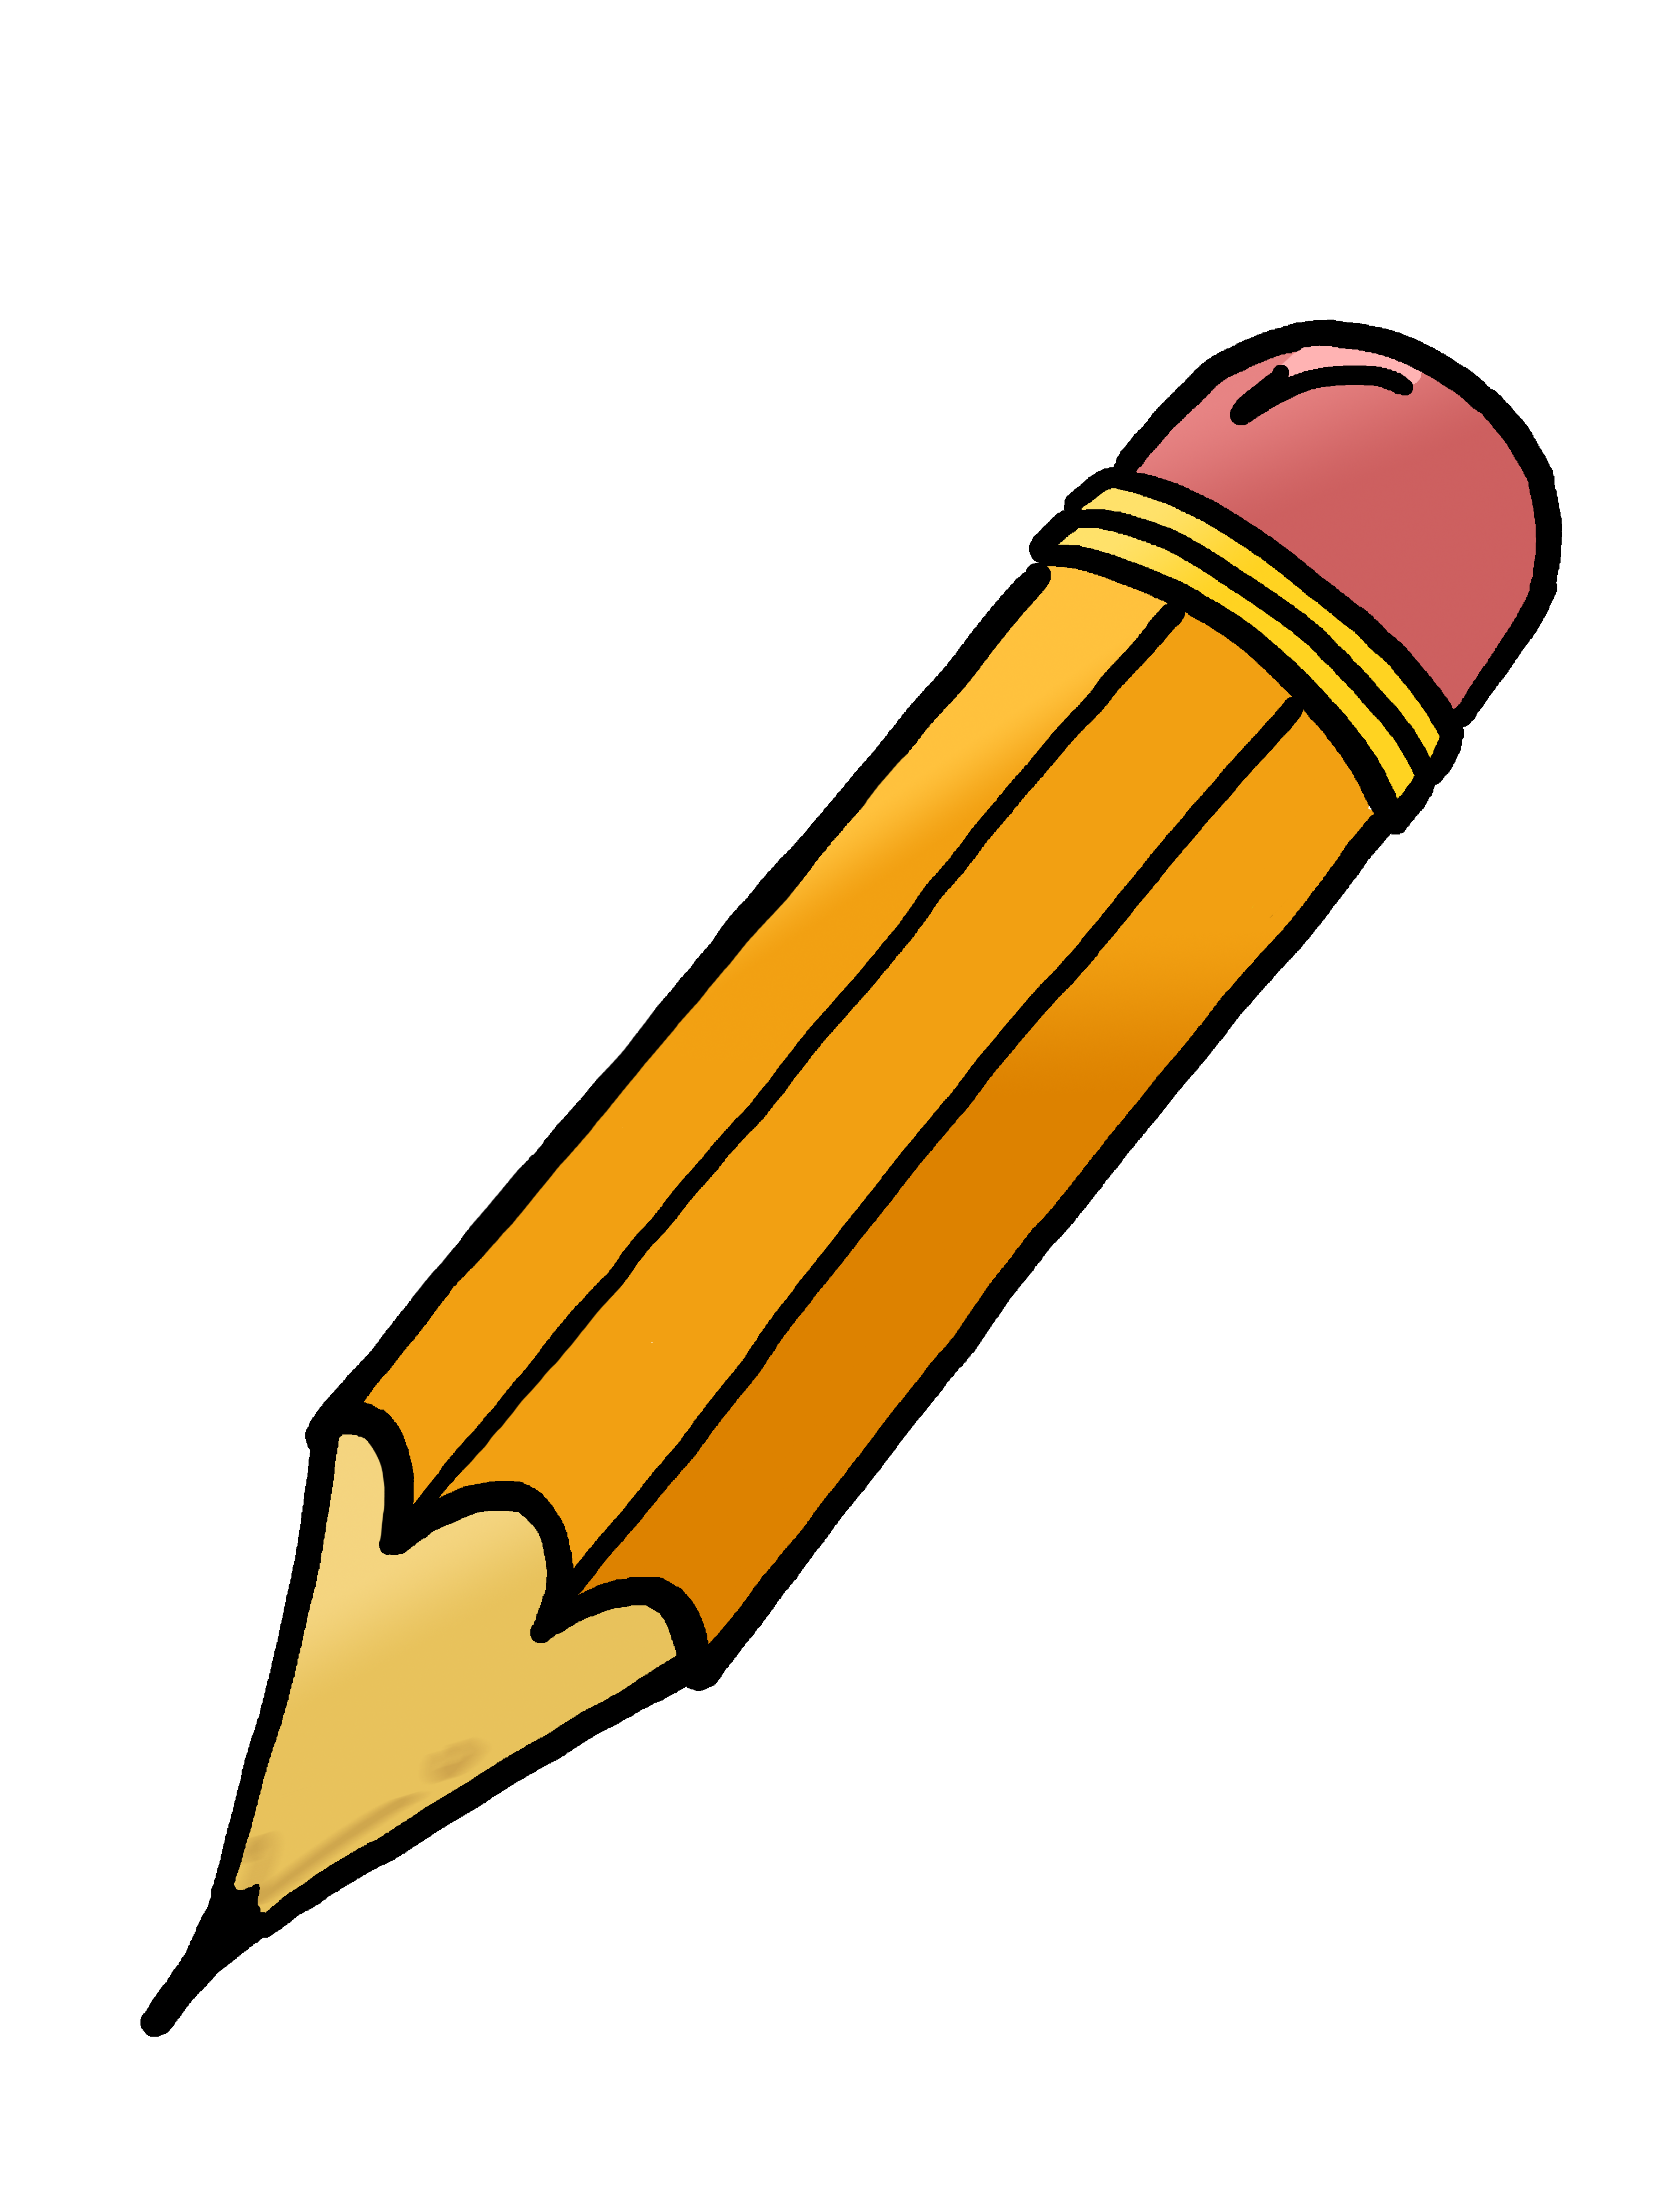 paper and pencil clipart - photo #18